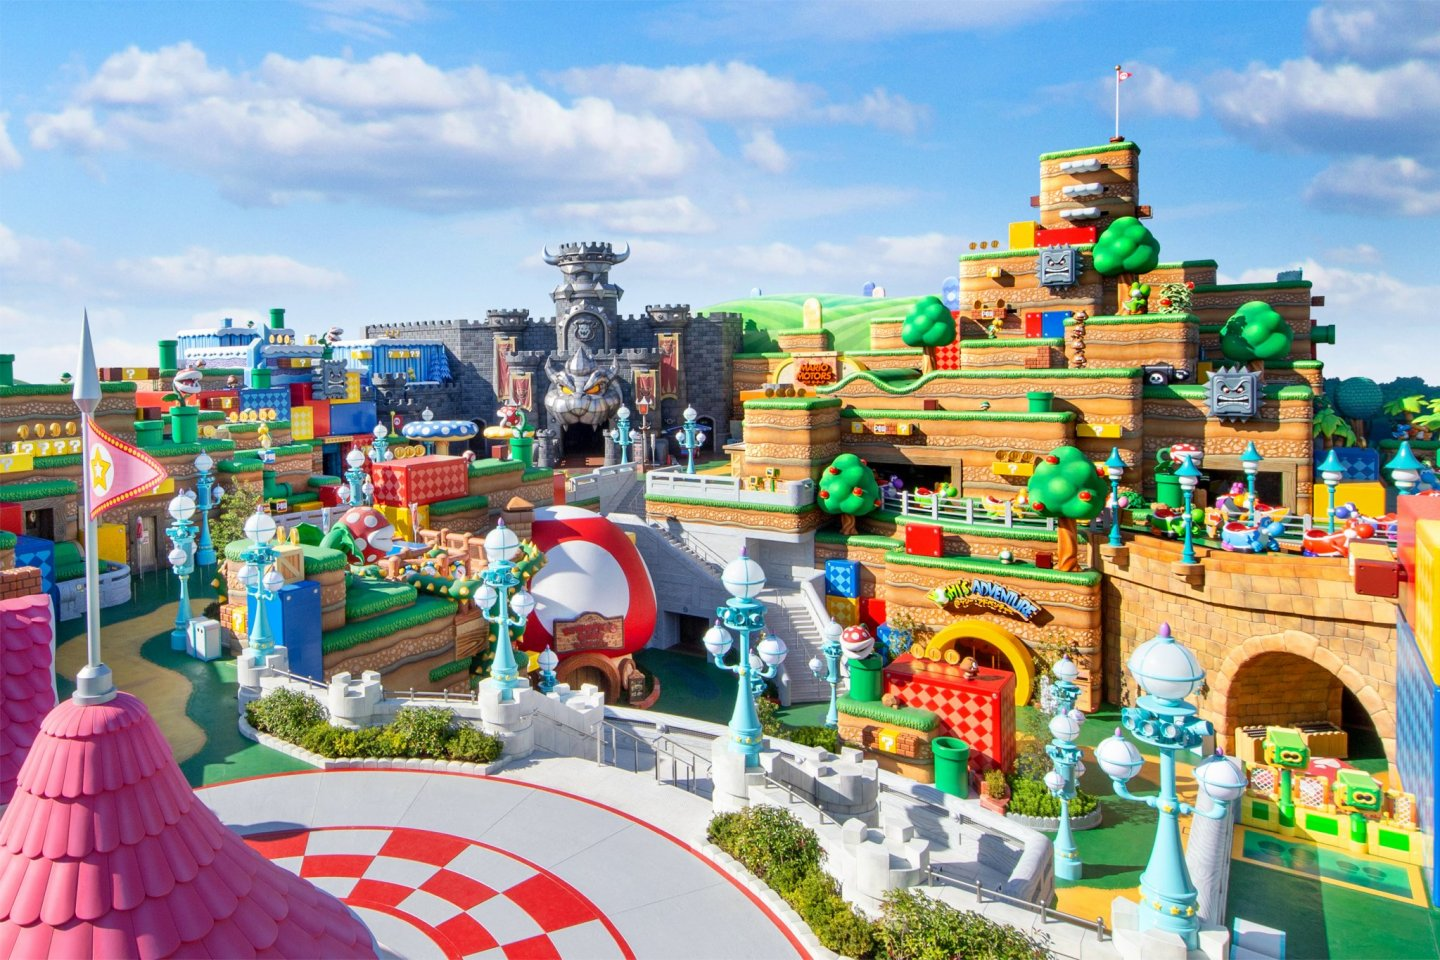 The Mushroom Kingdom in all its splendor